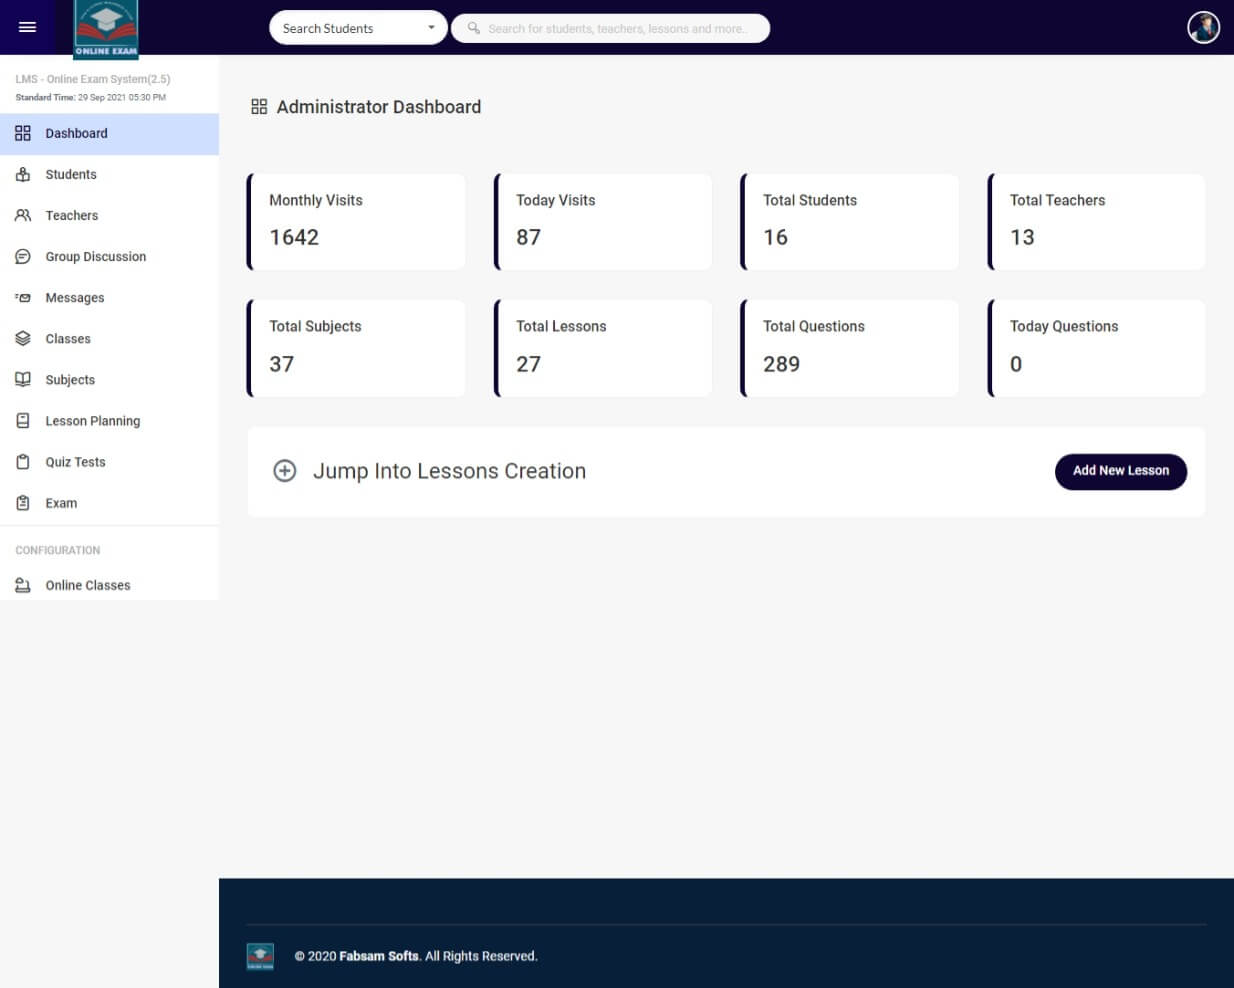 Online Exam and Learning Management System - Admin Dashboard